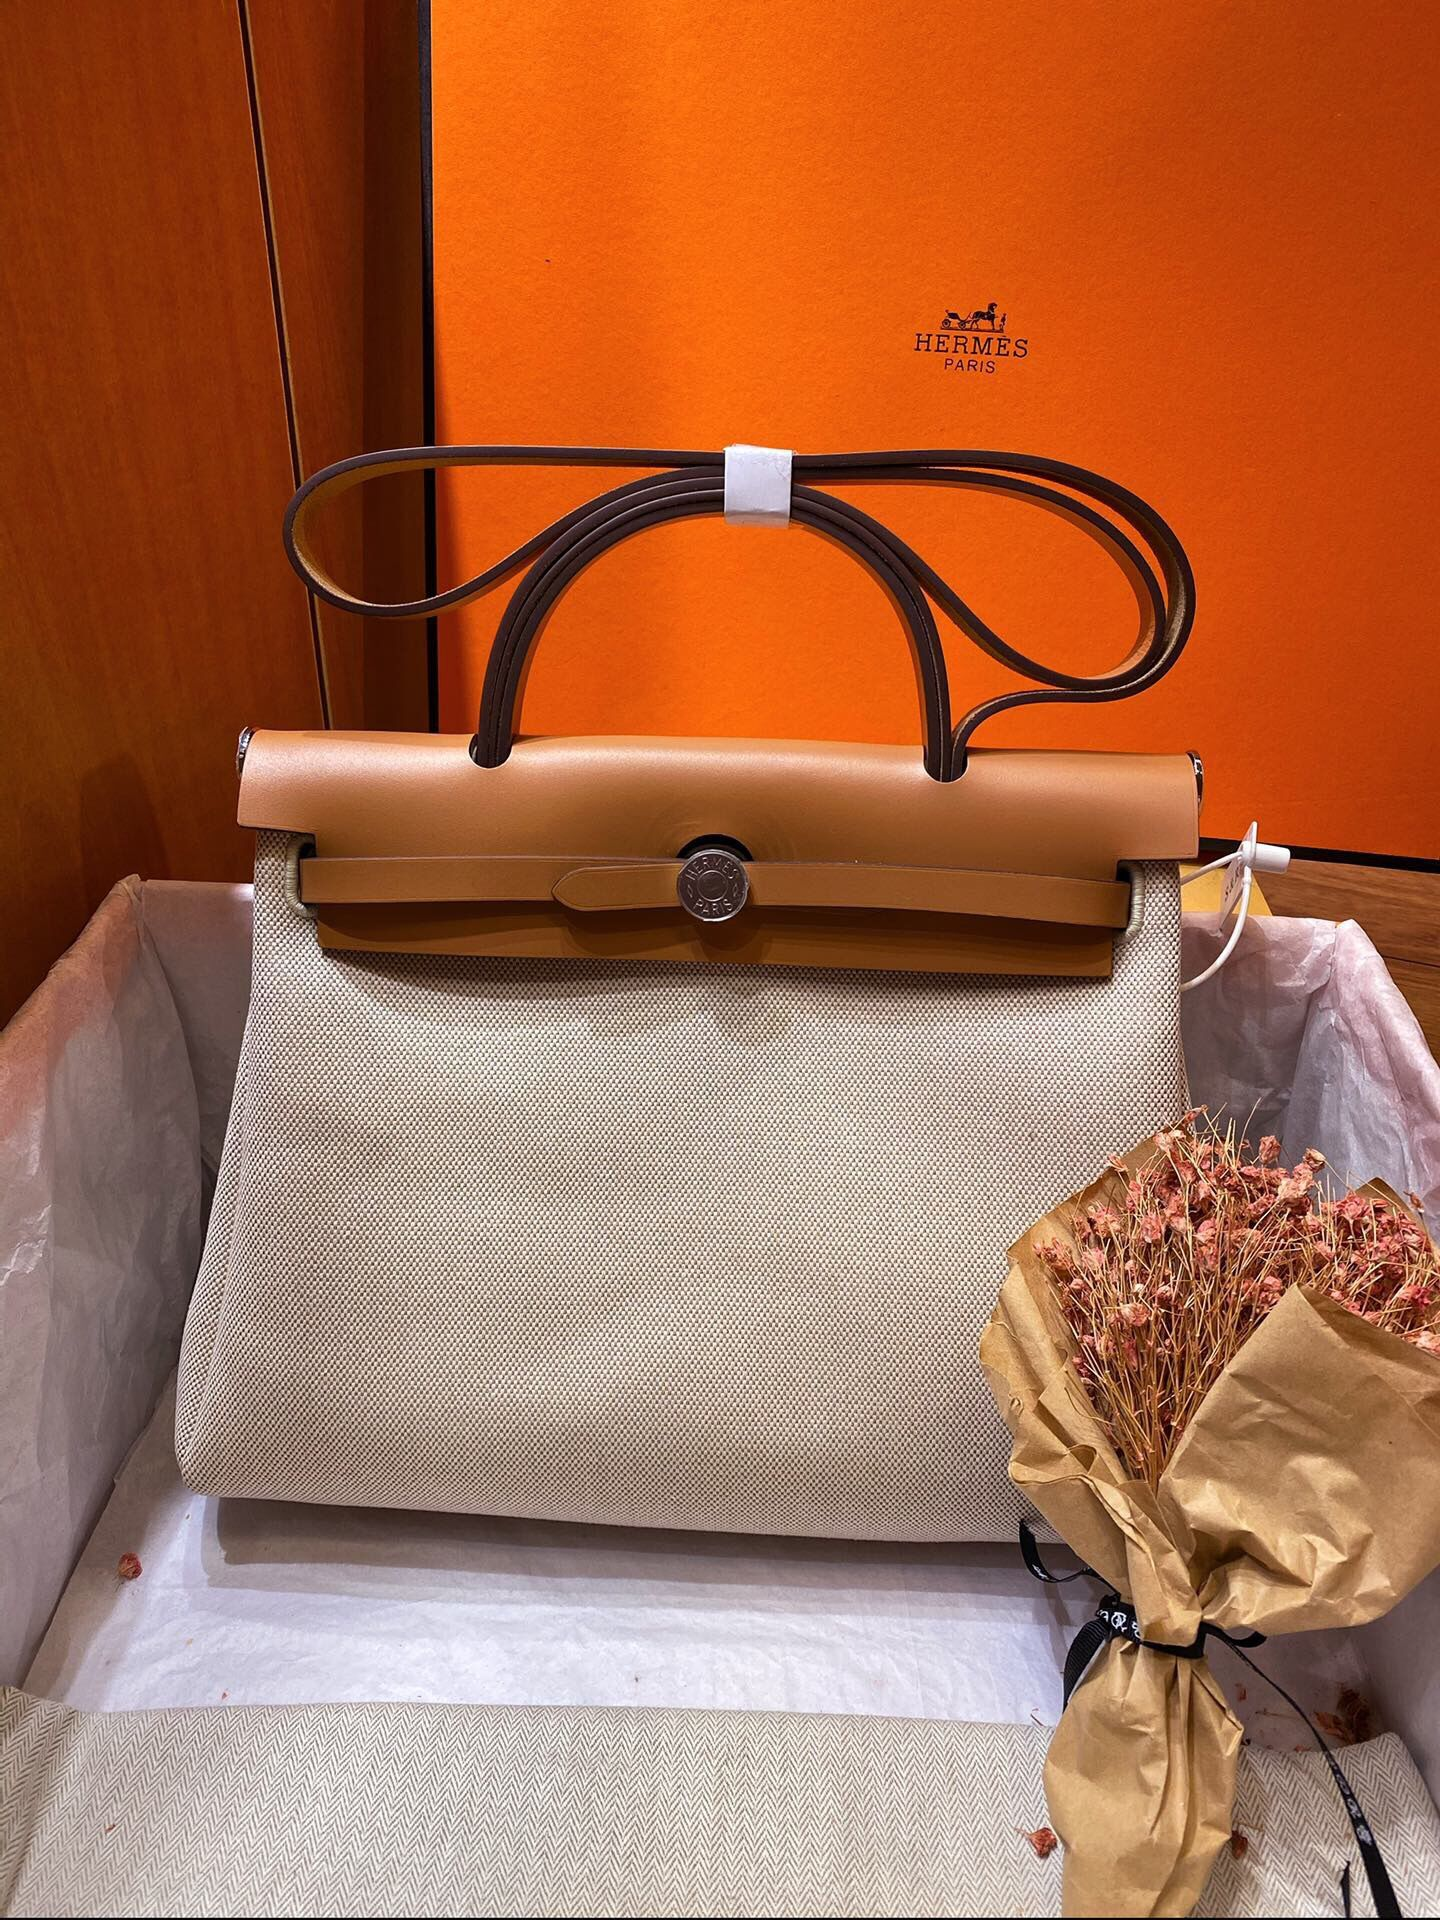 Hermes Herbag 31CM Original Canvas Leather & Calfskin 45988 brown&white